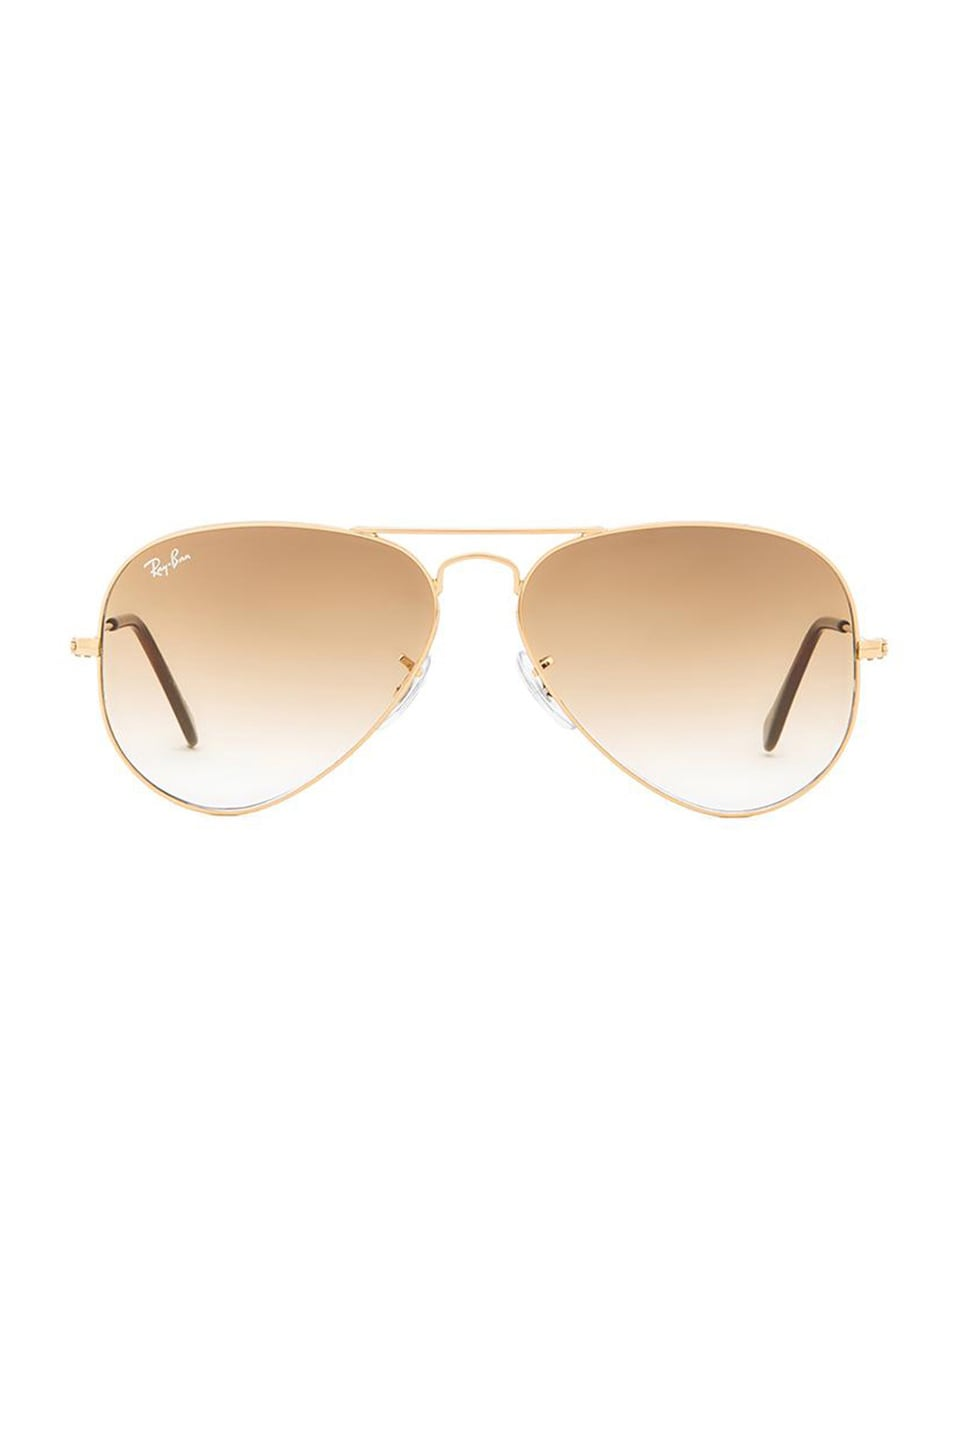 Ray-Ban Aviator Gradient in Gold & Light Brown Gradient